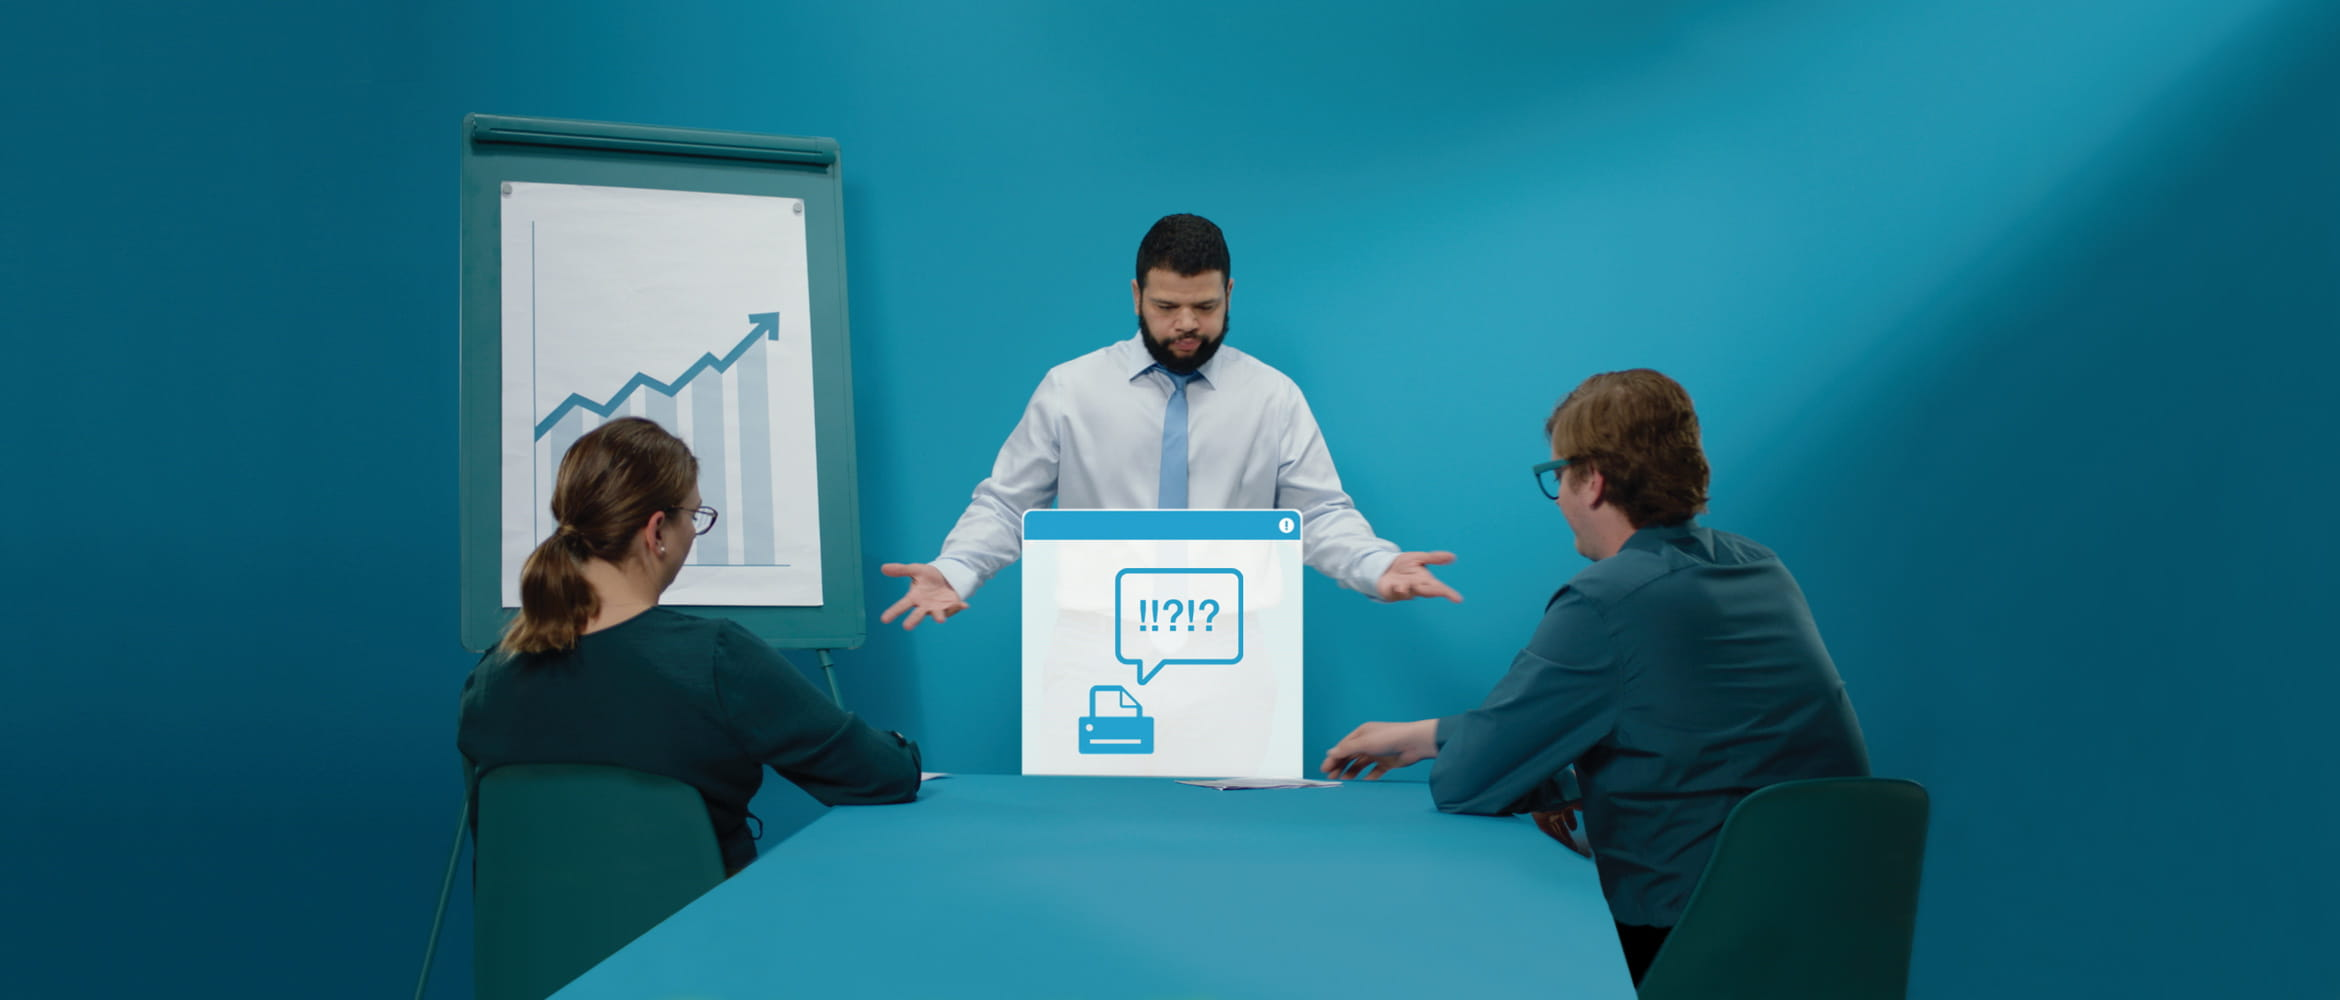 Man stood up doing a presentation to a man and woman